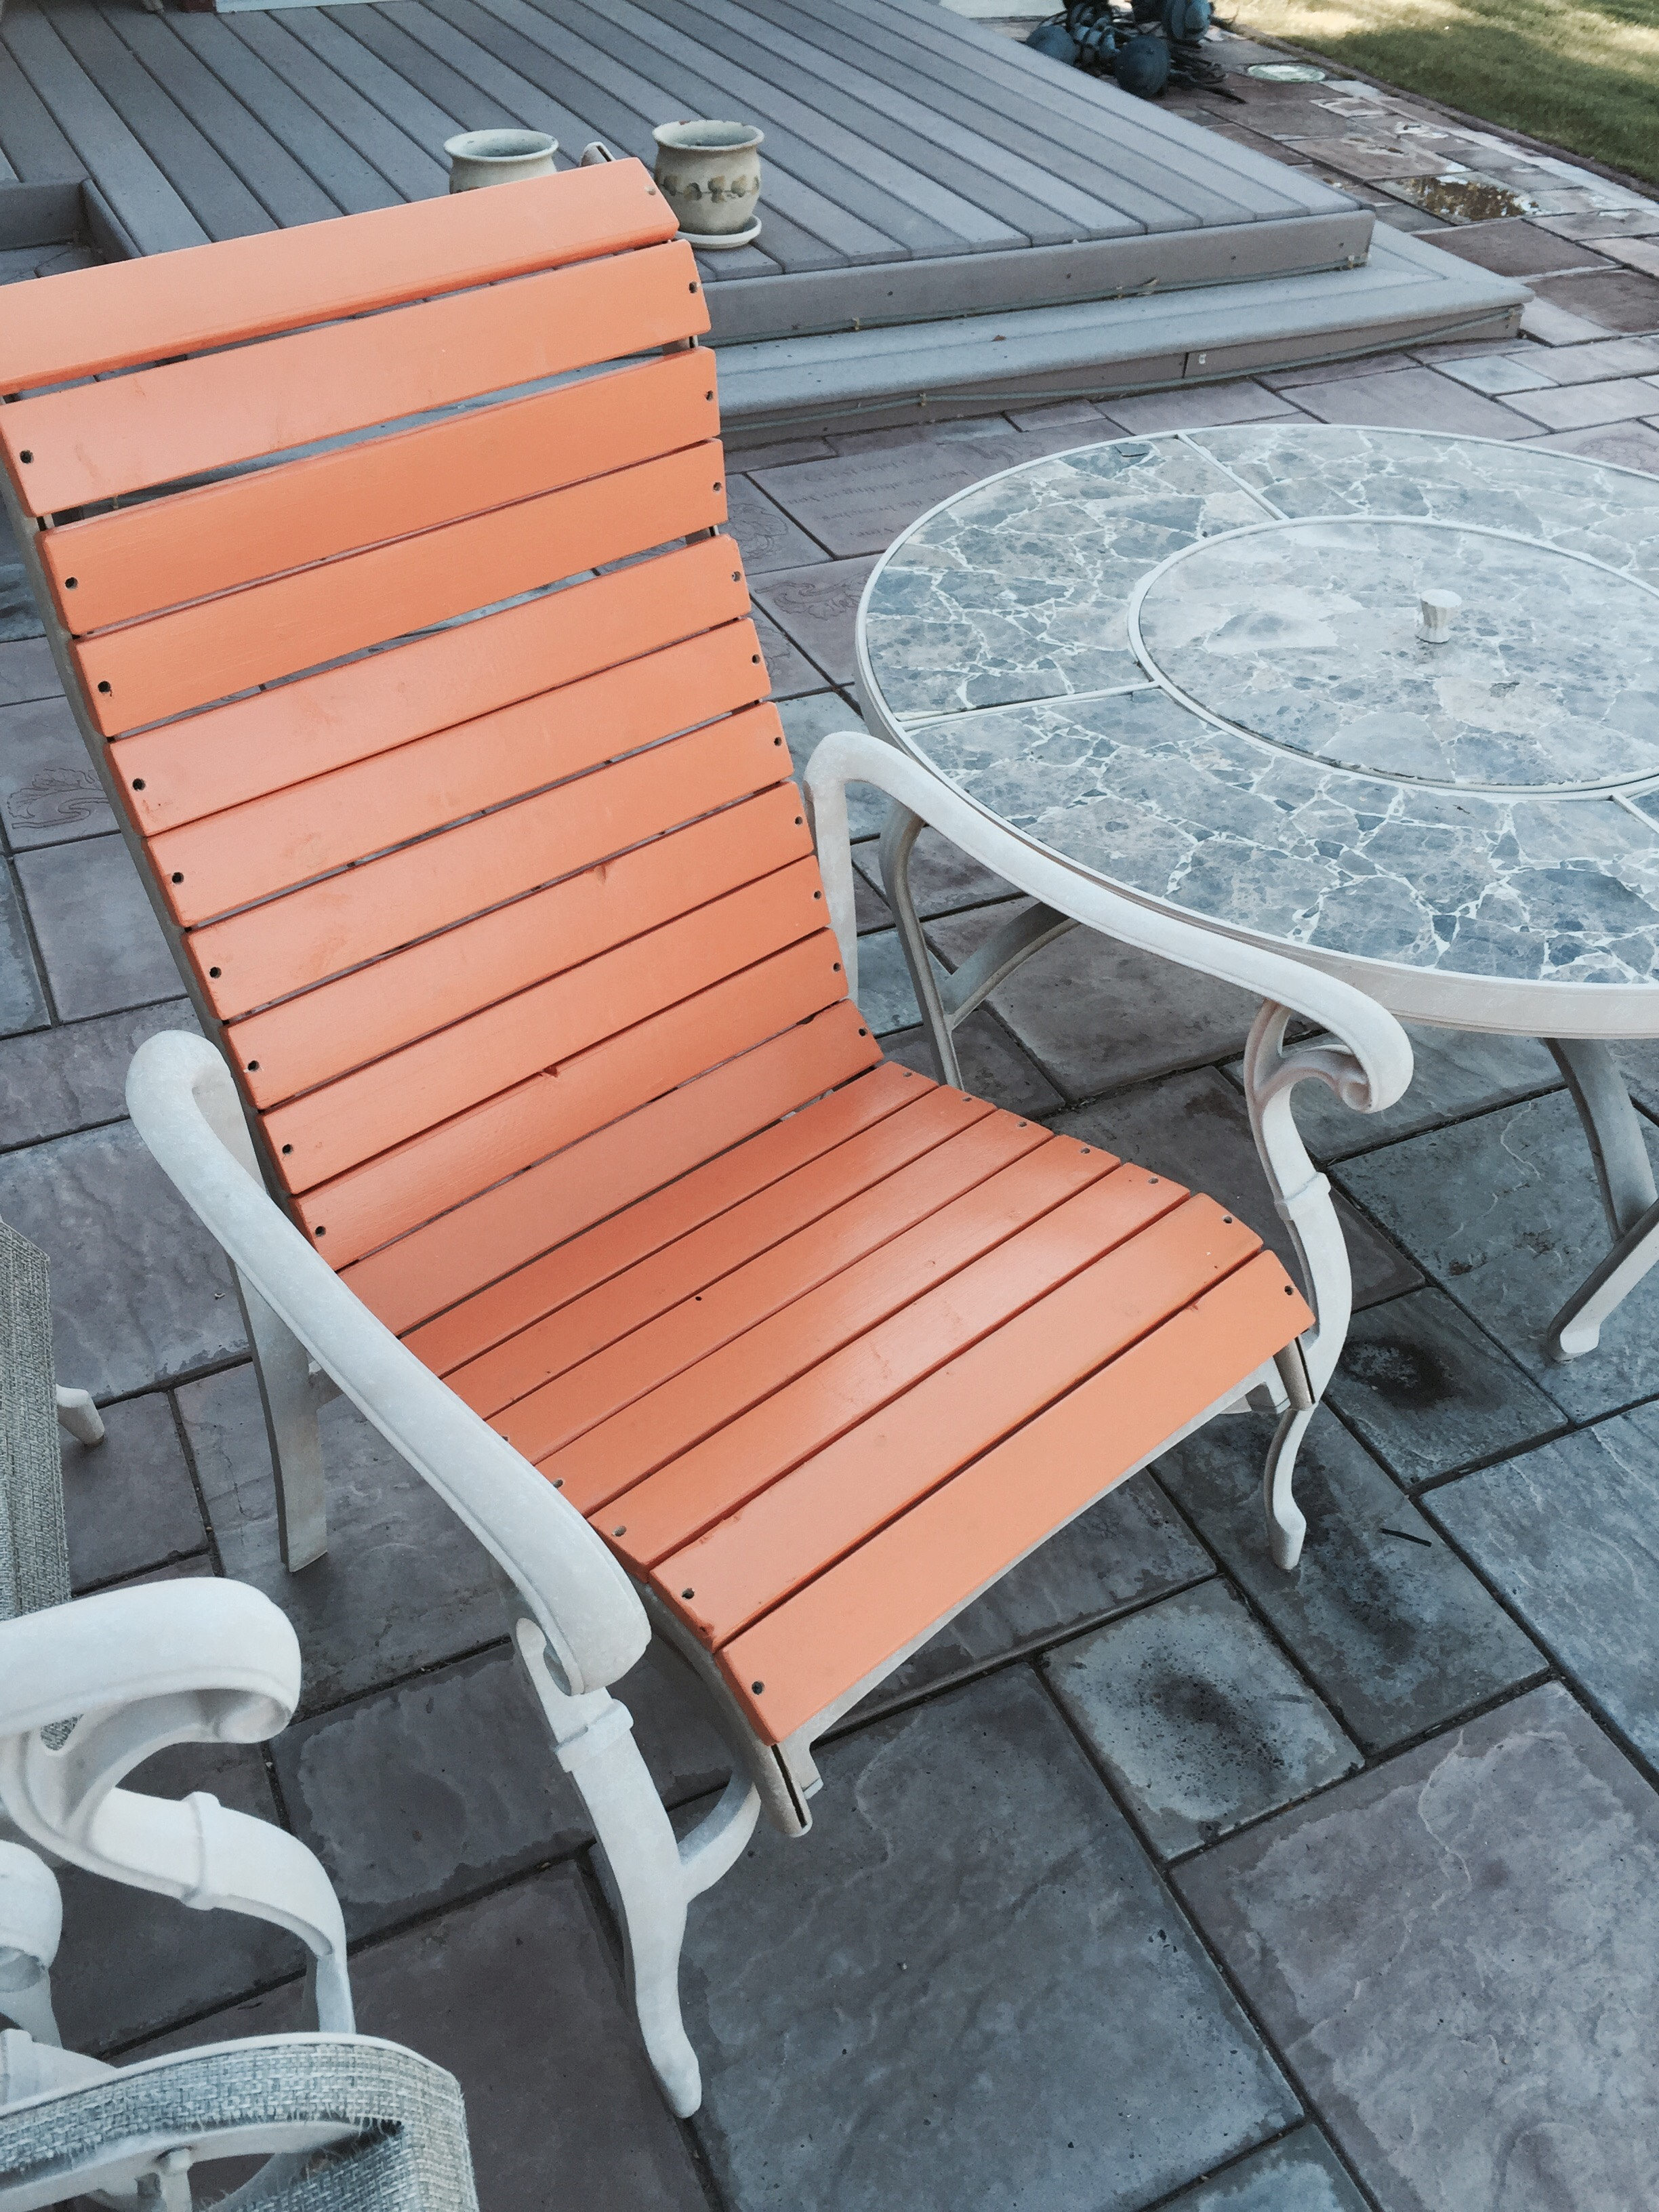 How To Repair Patio Furniture.Patio Chair Re Build 5 Steps With Pictures